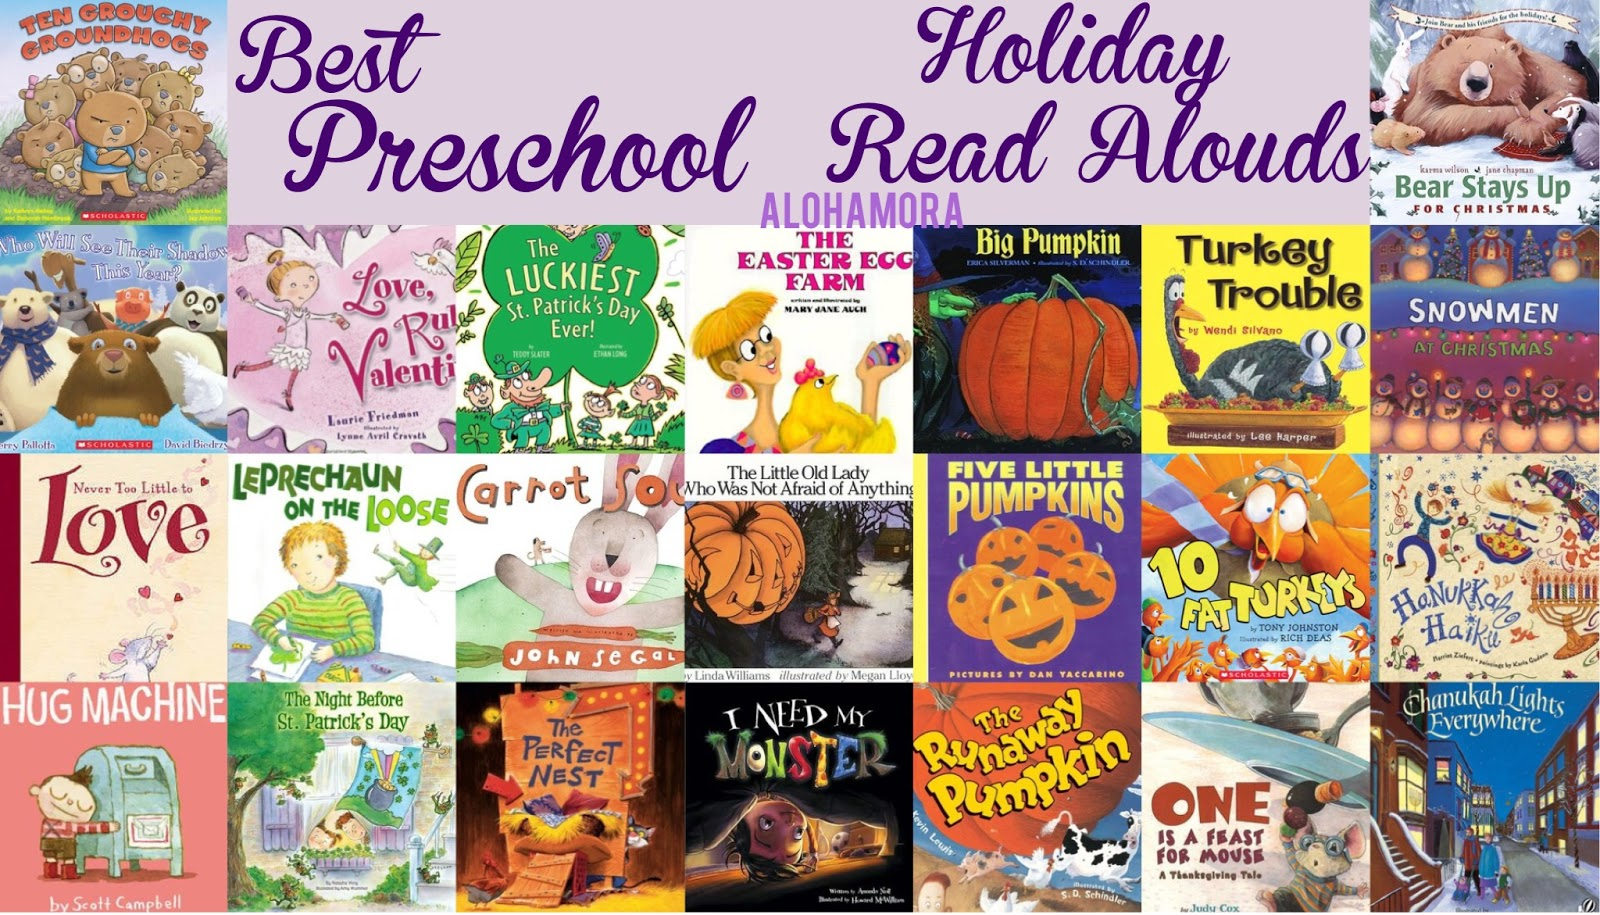 The Best Preschool Holiday Read Alouds for every holiday.  Fun books, great books for teaching sequencing lessons and more.  All around books every classroom library should have.  Teachers and toddlers will love these.  Kindergartners and Kindergarten teachers will enjoy these as well. Alohamora Open a Book http://alohamoraopenabook.blogspot.com/